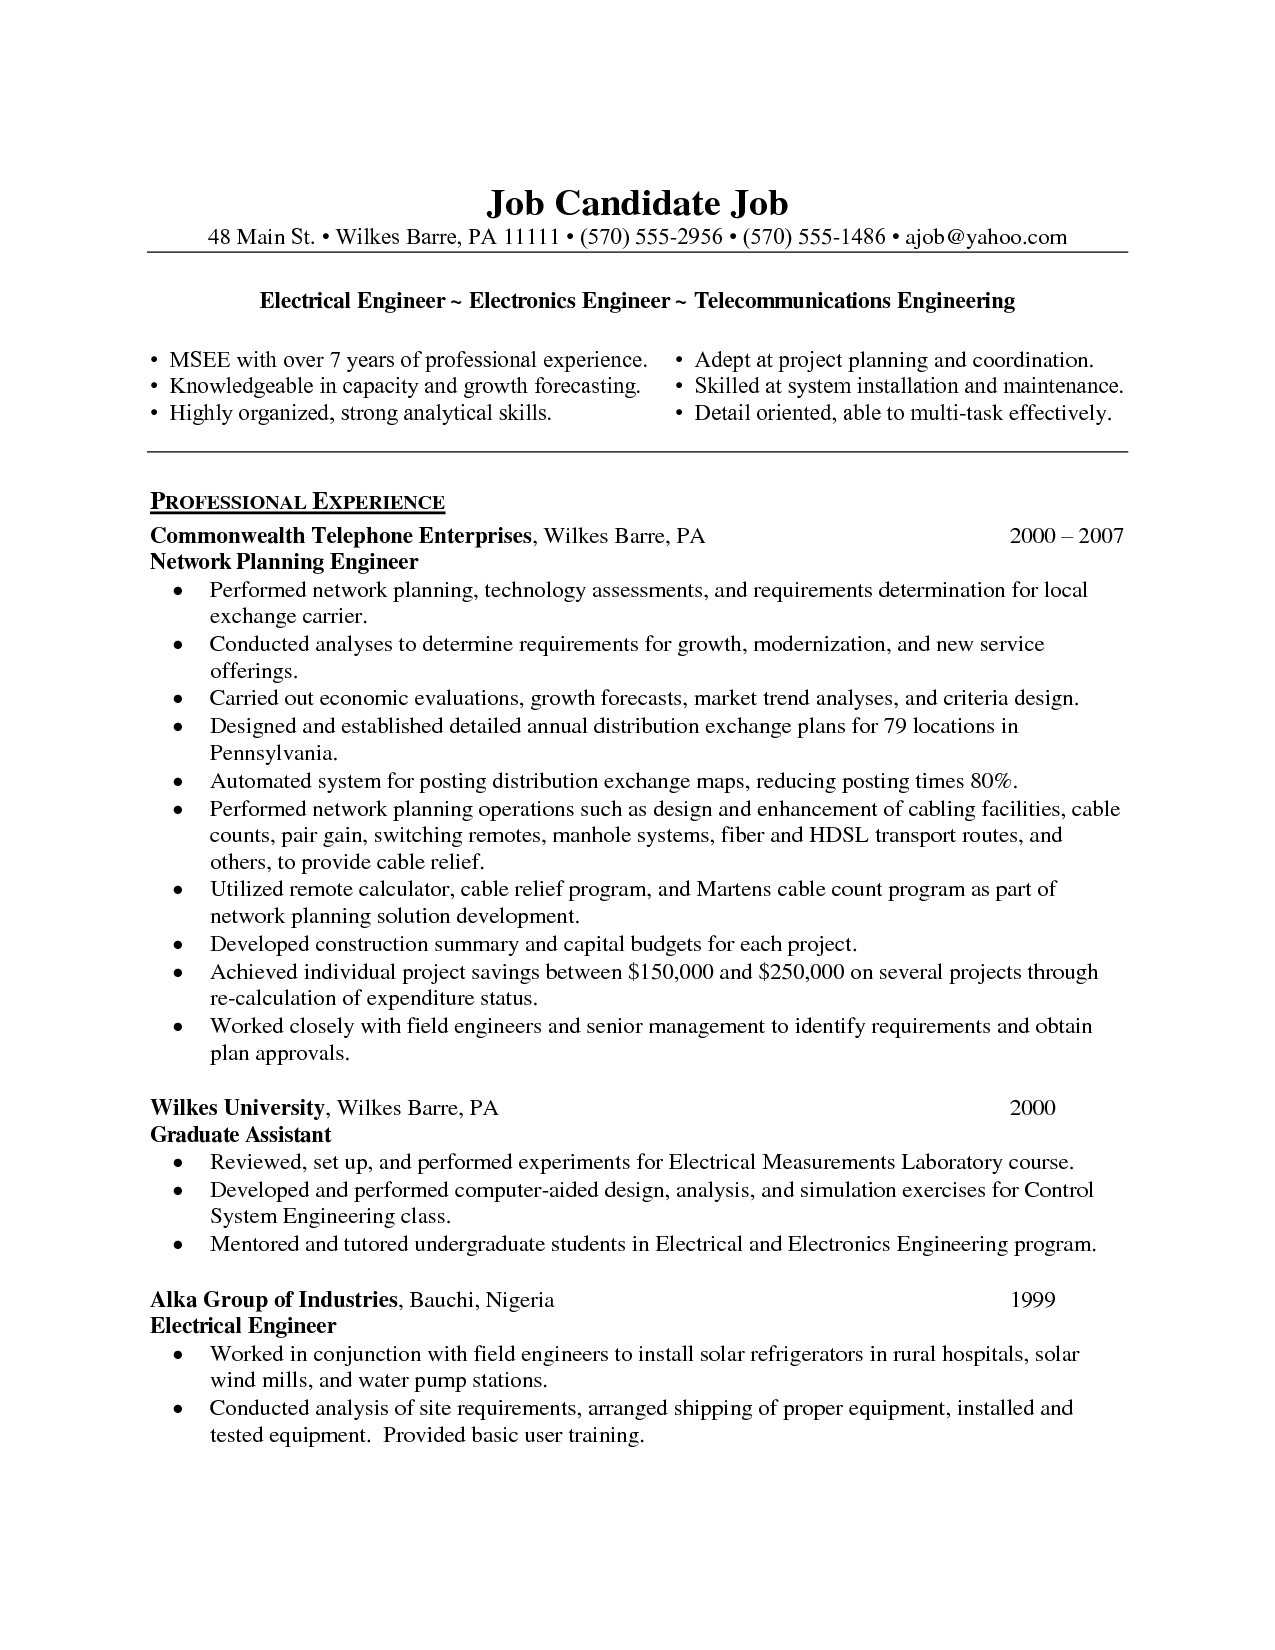 Electrical Engineer Resume Example    Http://www.resumecareer.info/electrical Engineer Resume Example 15/